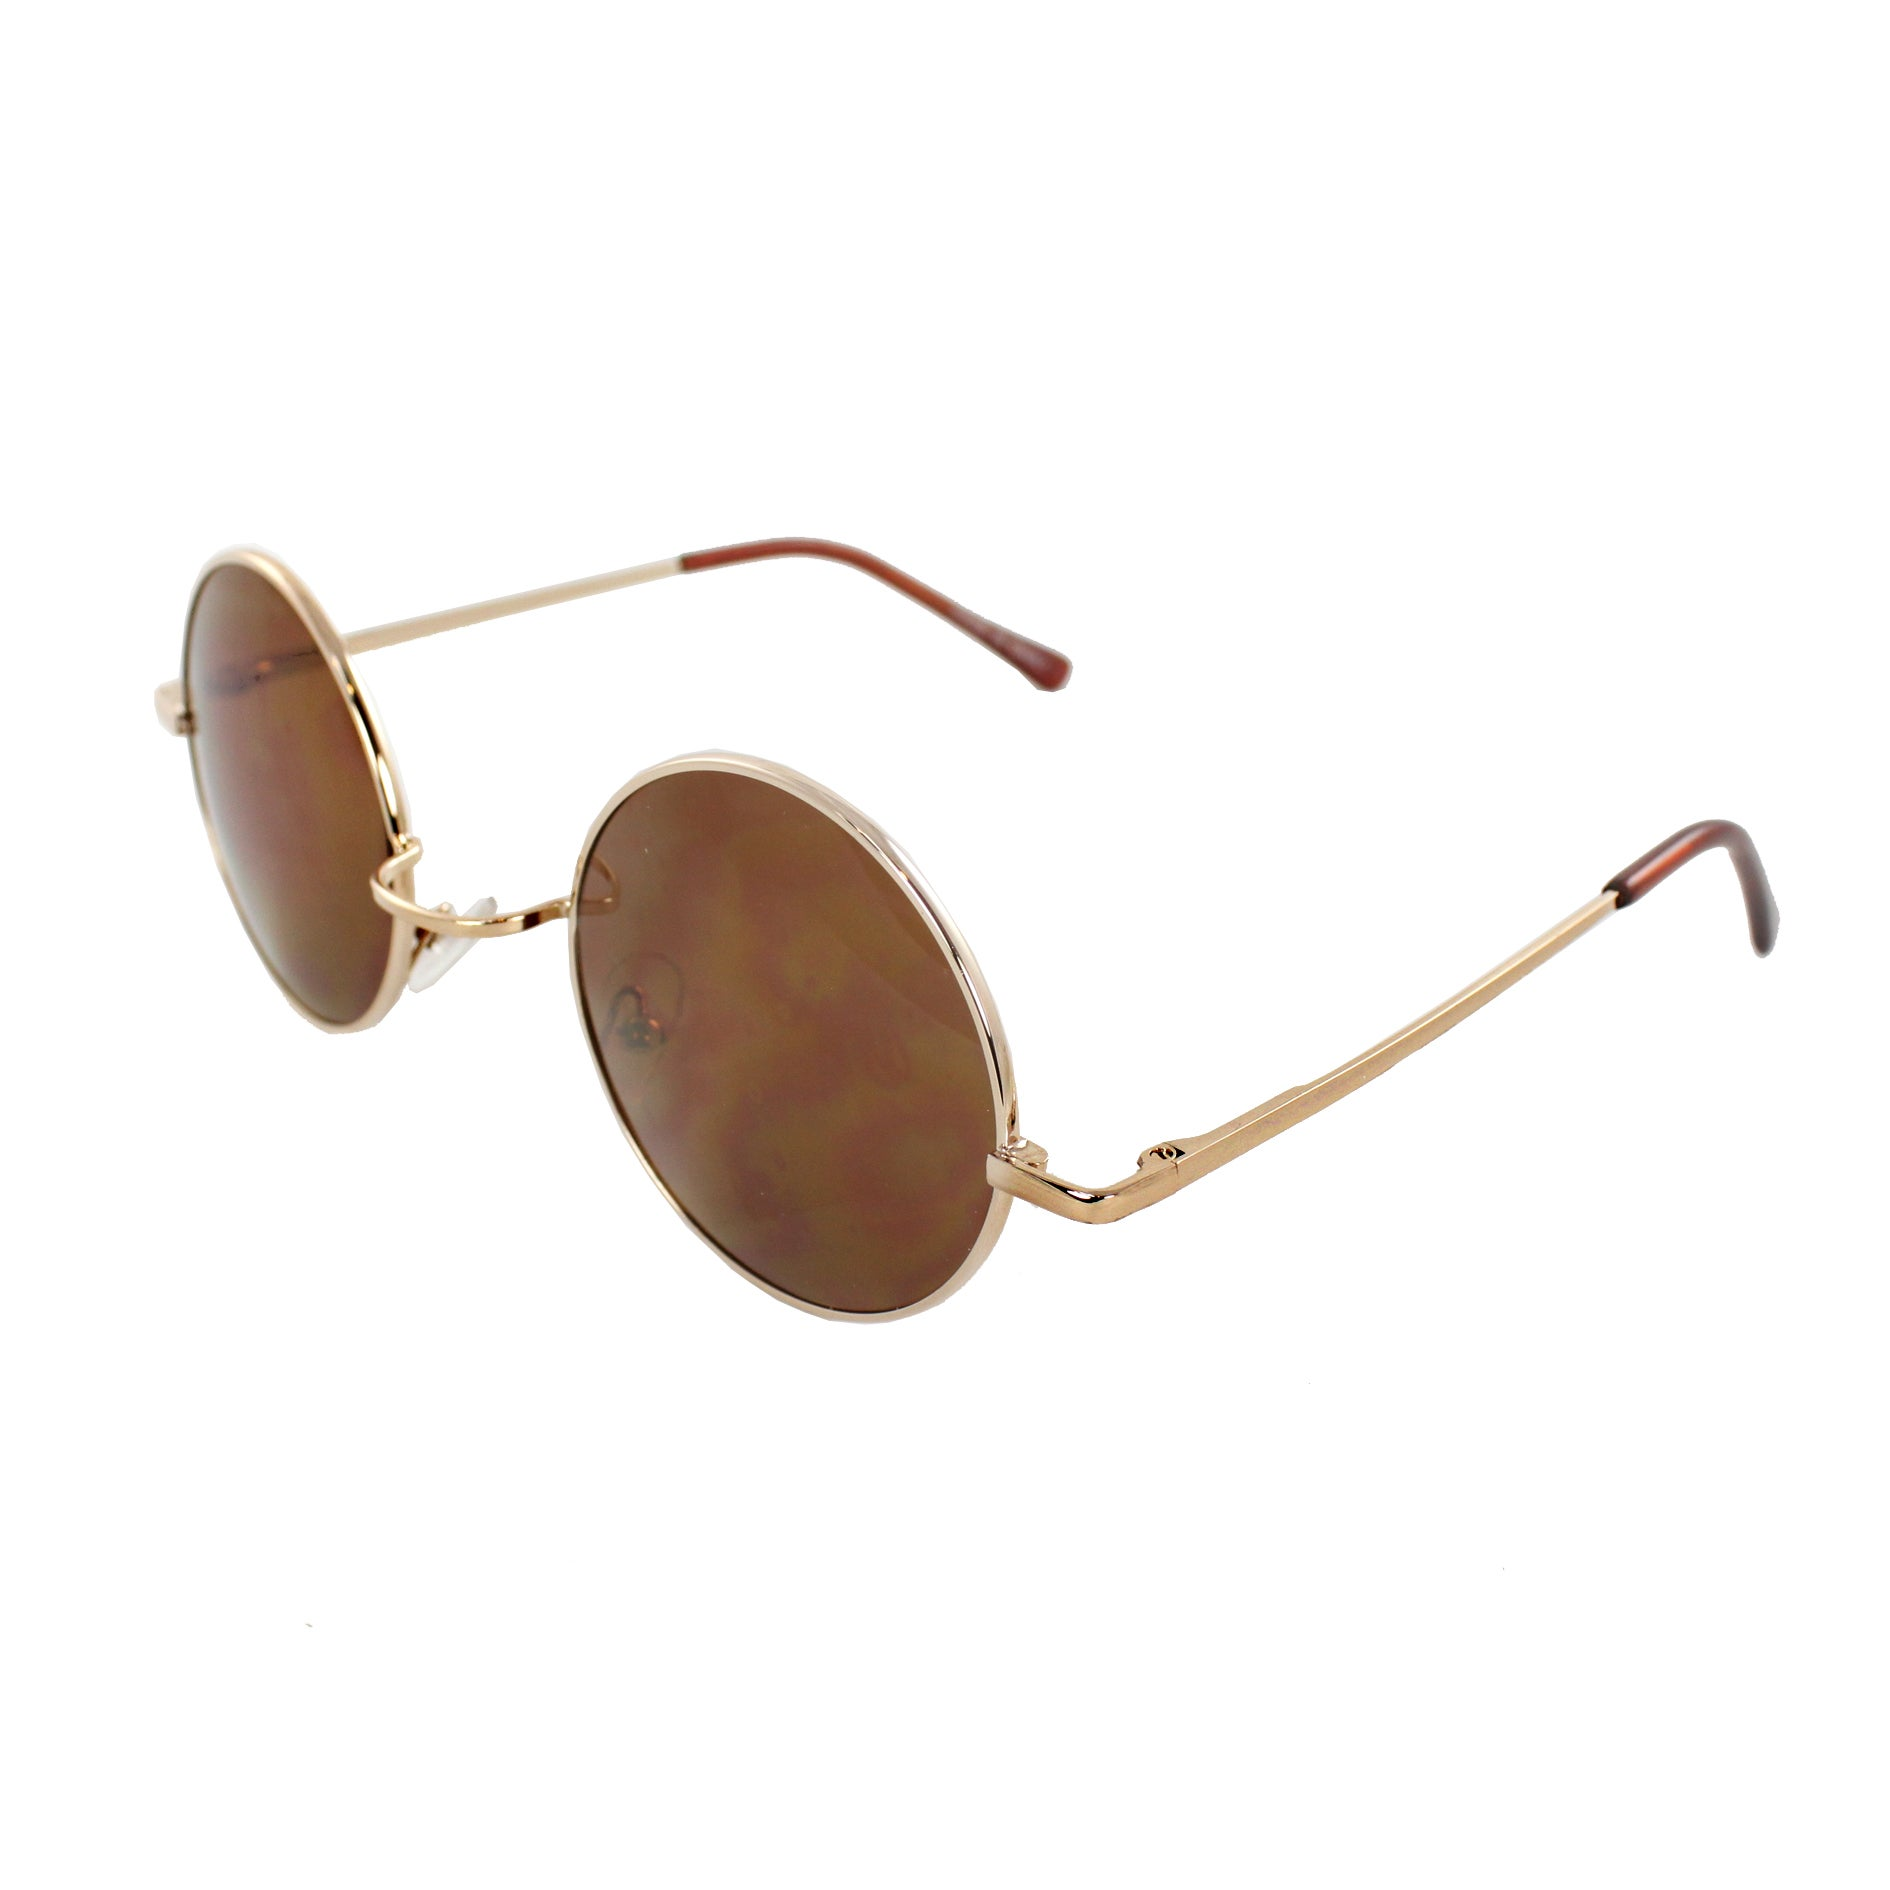 Retro Round Sunglasses Gold Frame and Brown Lenses for Women and Men - Thumbnail 0